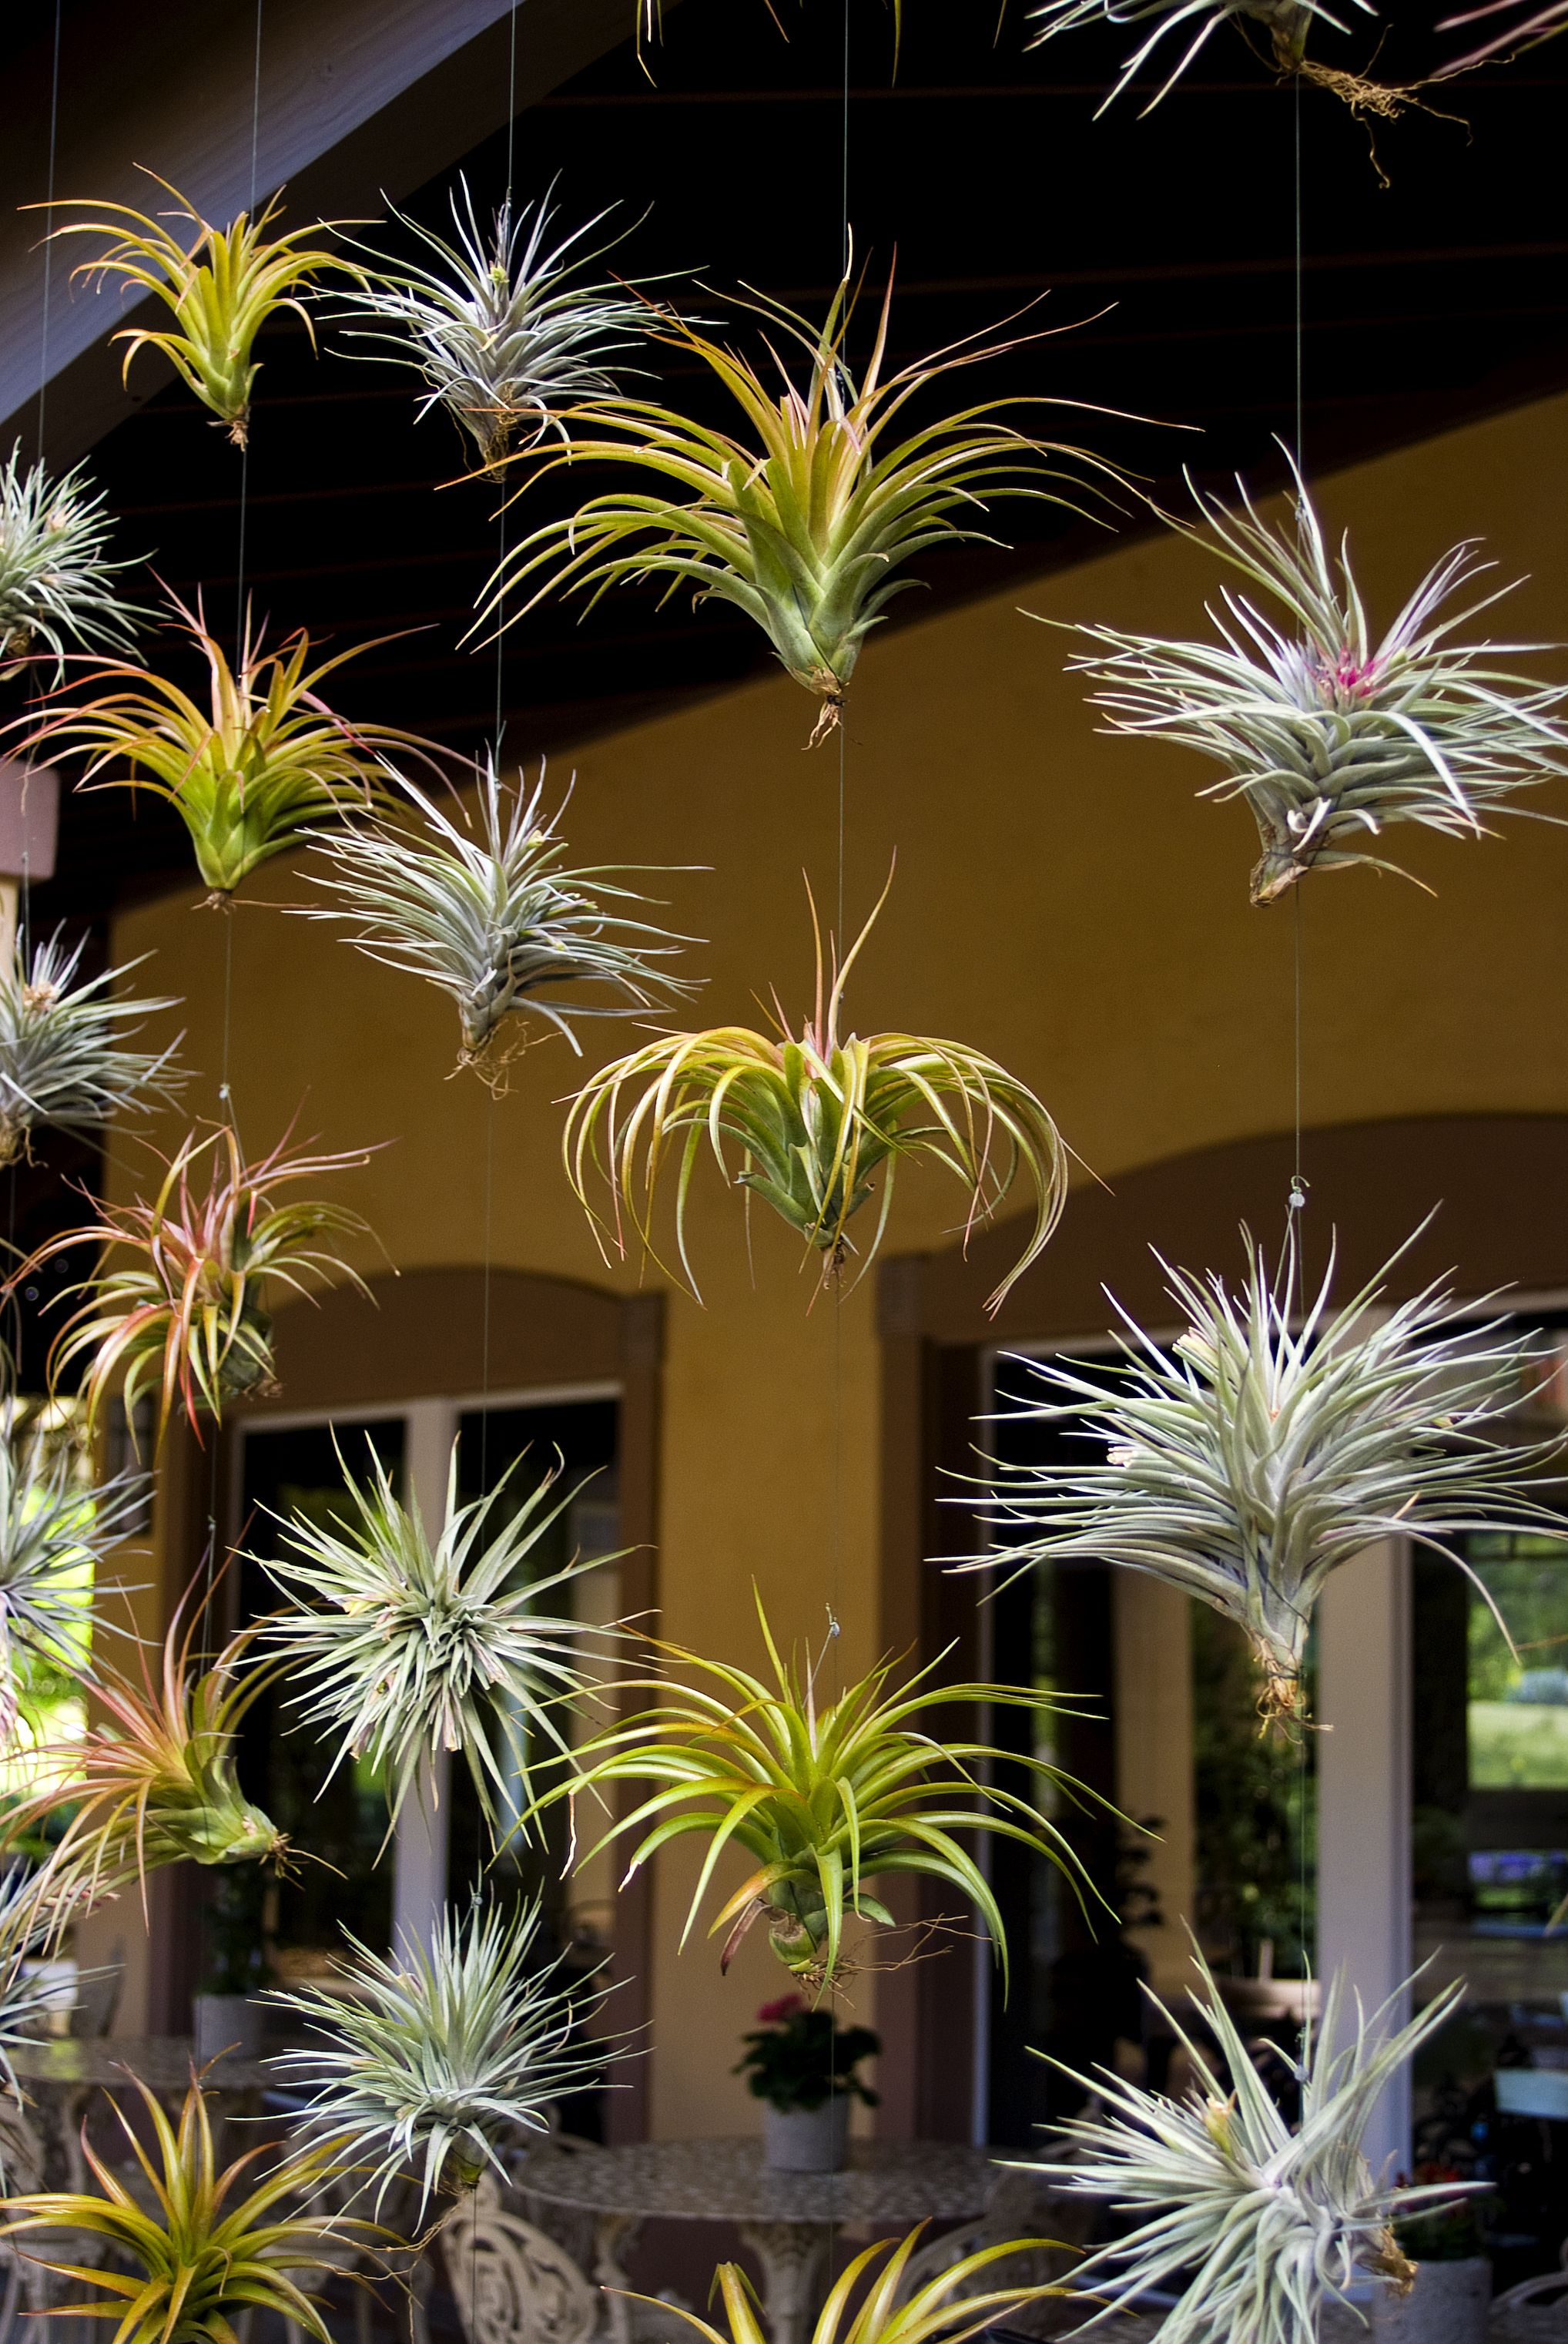 Superior Our Visitor Center Has A Wall Of Tillandsia (air Plants) On Display. A  Great Way To Garden Soil Free!